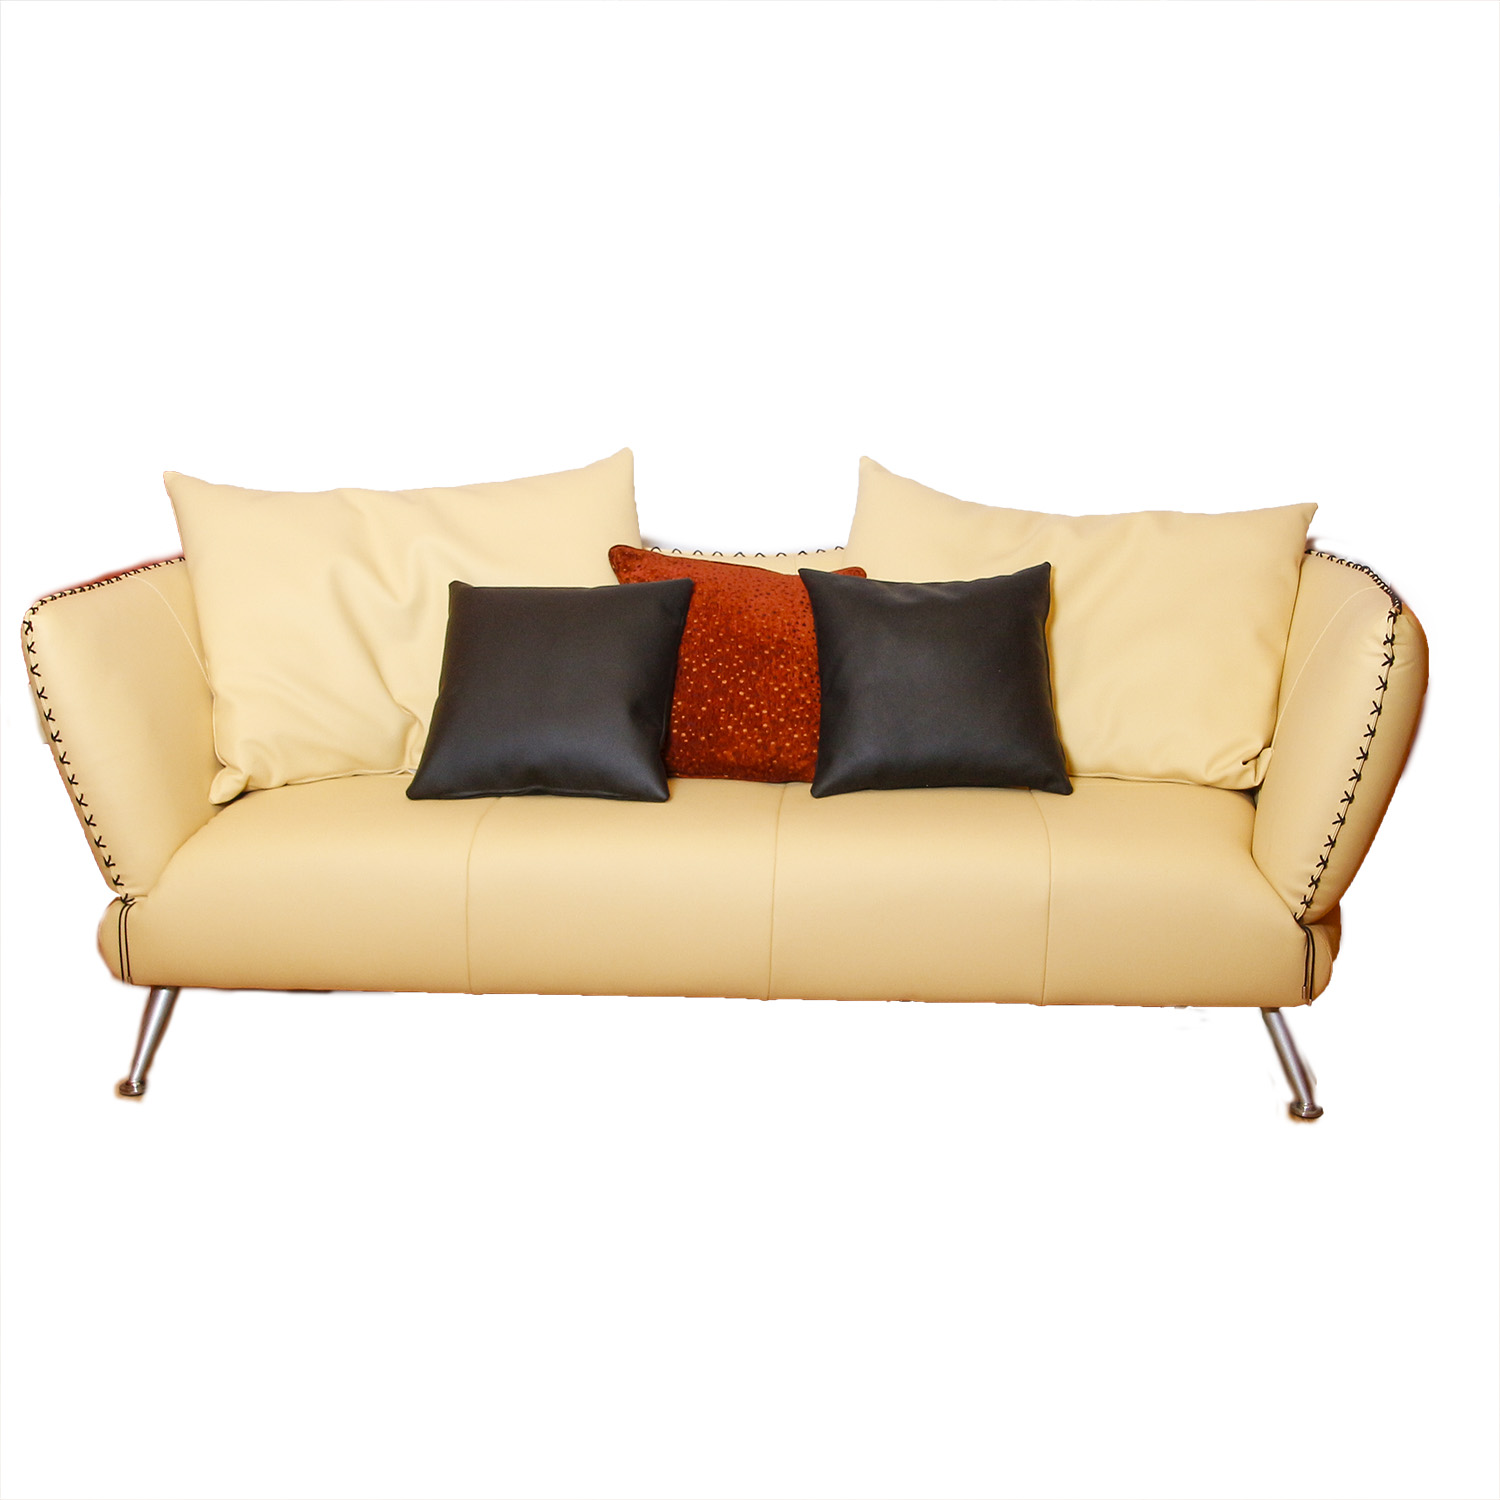 Contemporary Pale Yellow Leather Couch